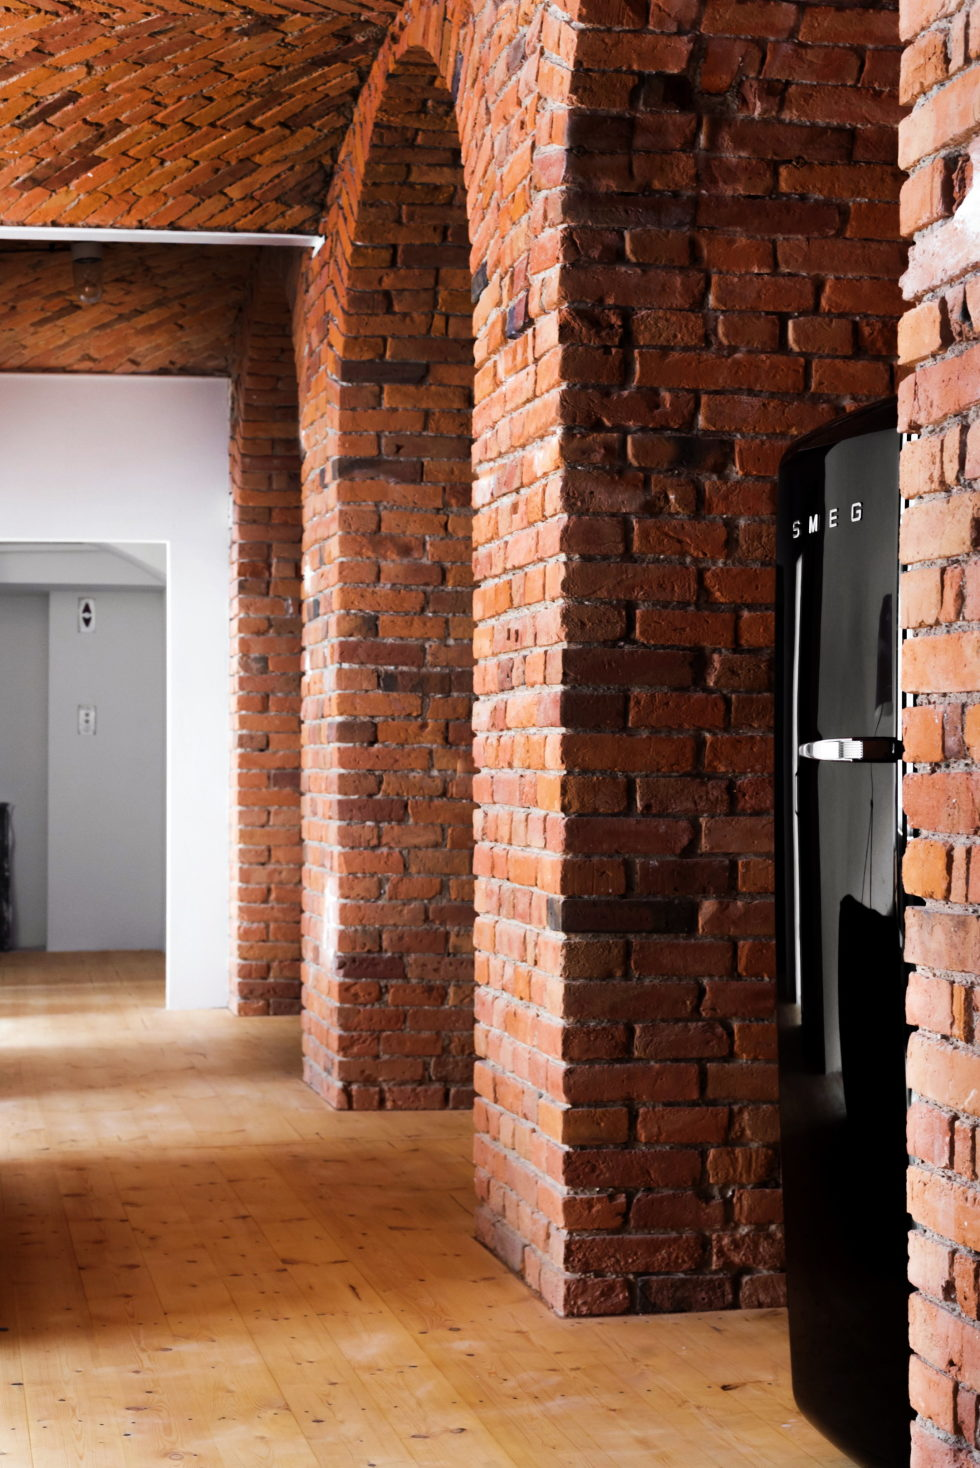 Loft On The Place Of Former Marmalade Factory In Poland 7